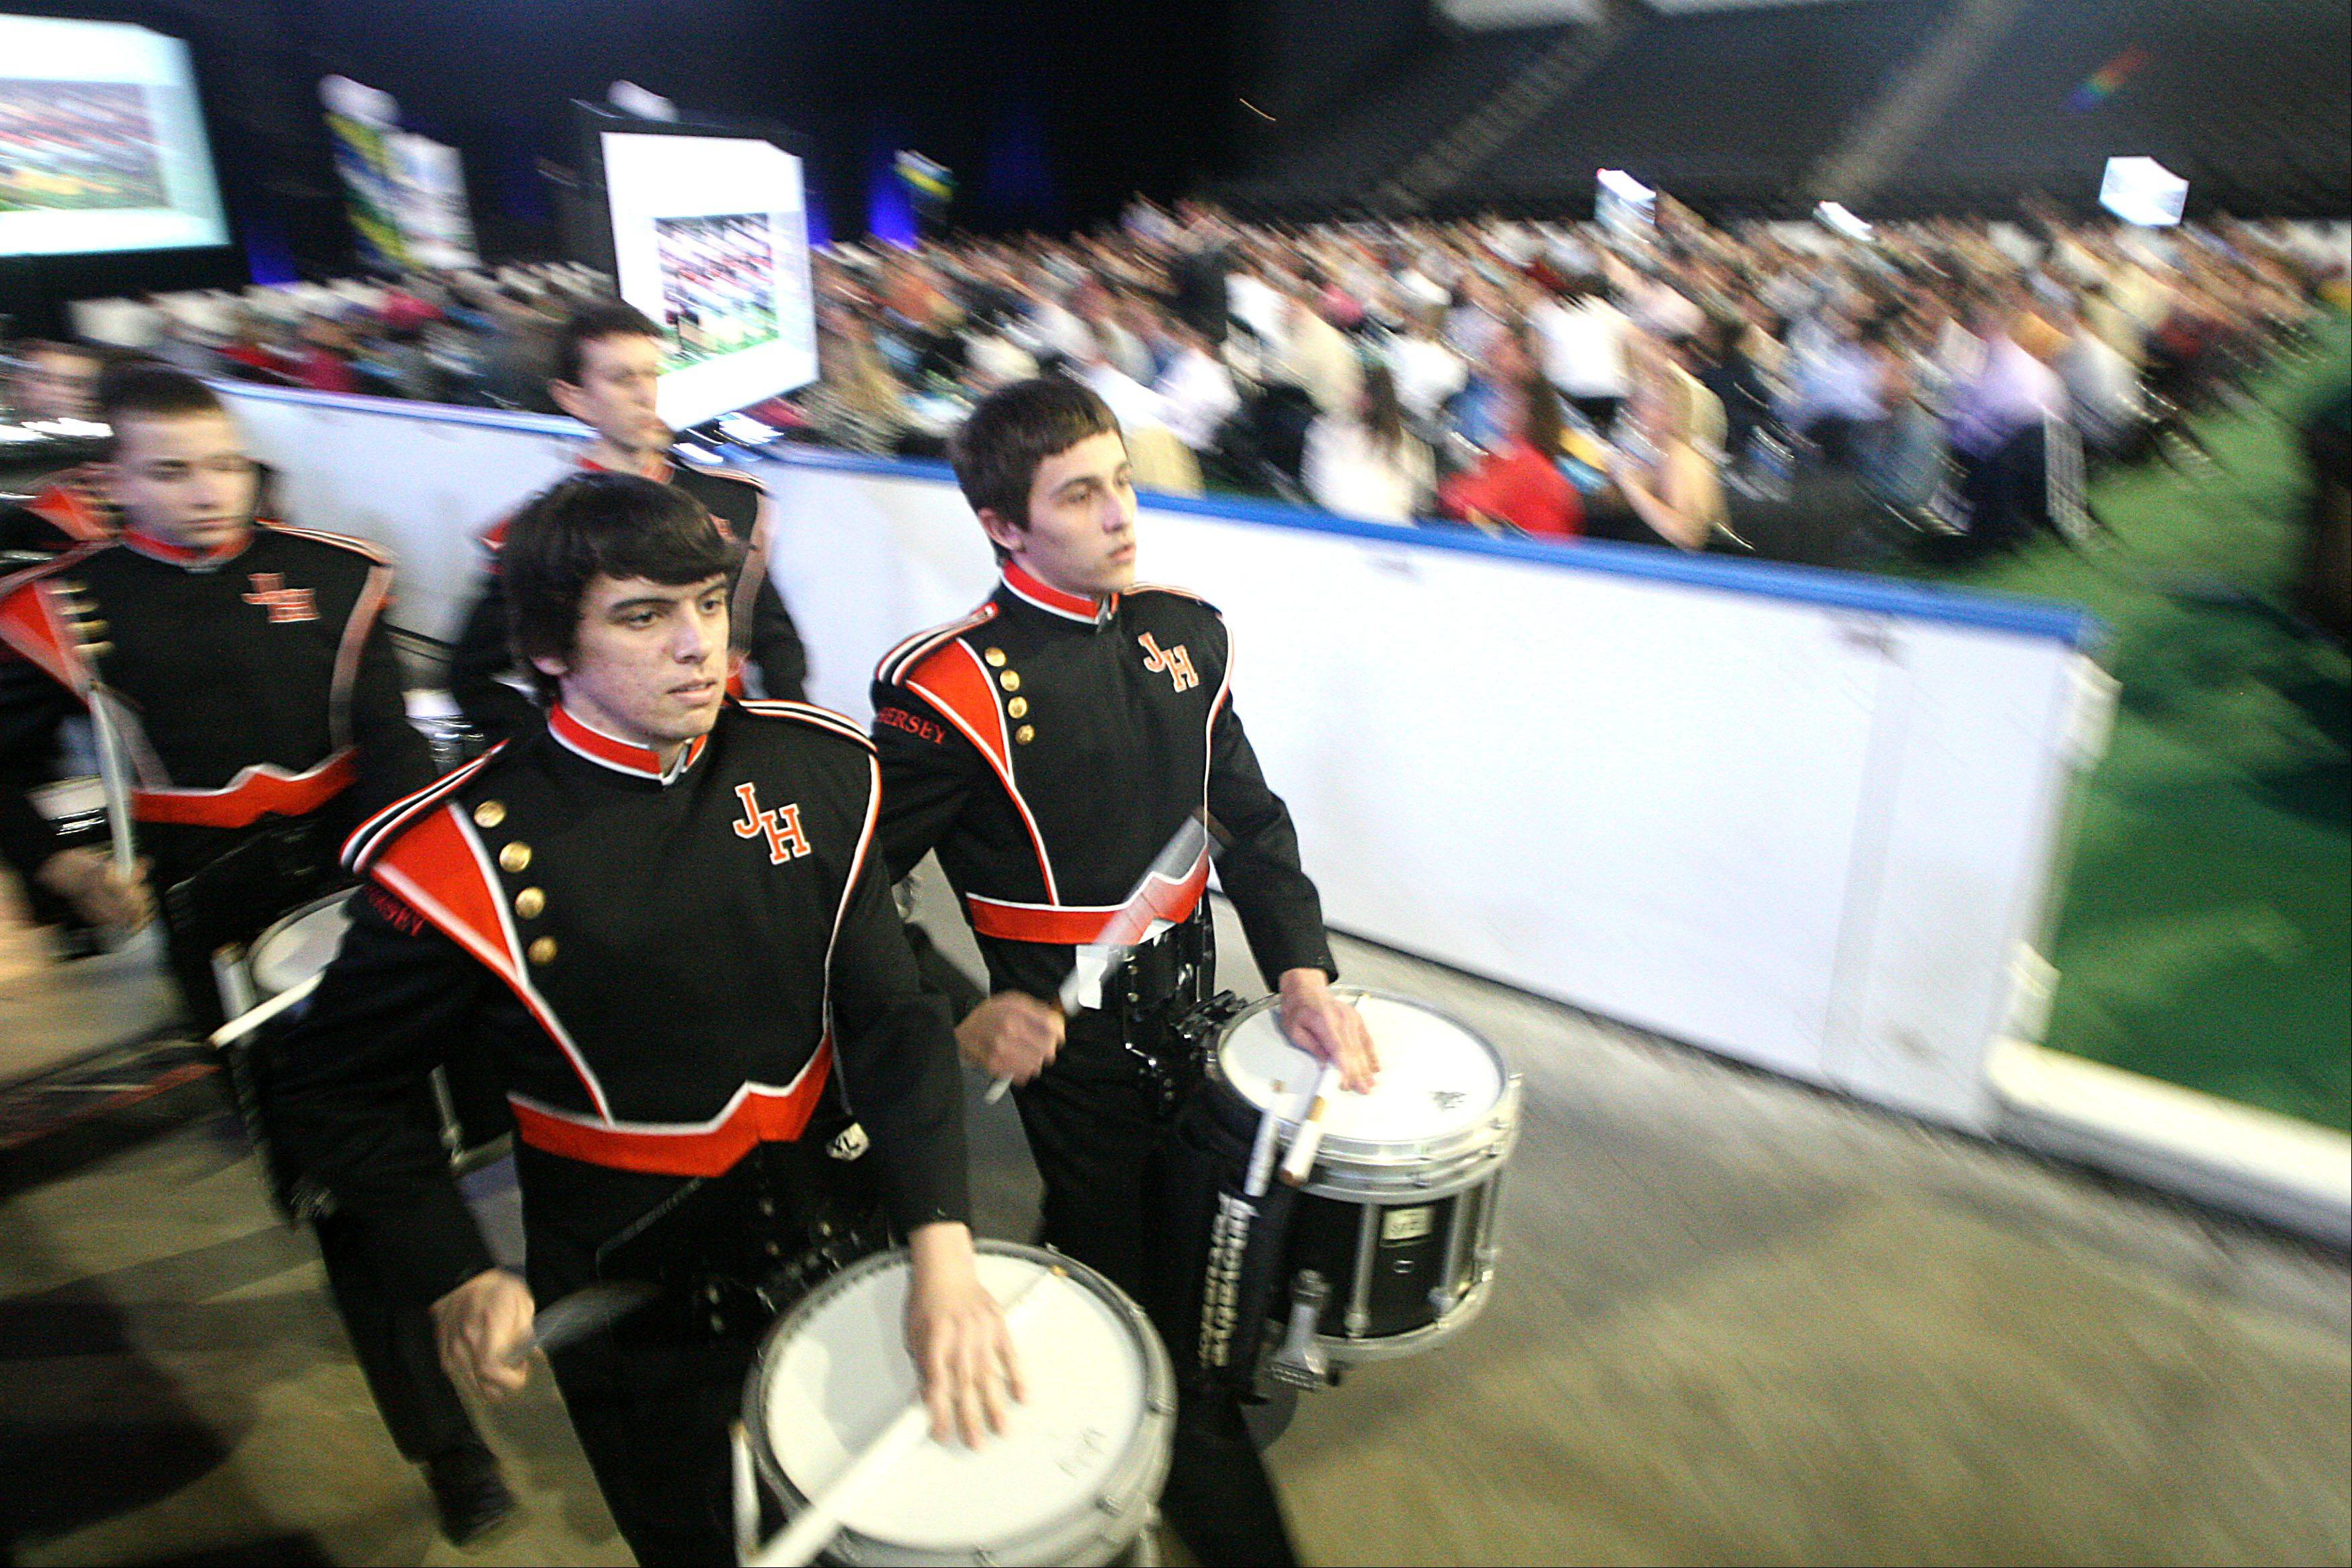 Members of the John Hersey High School drum line perform during the Daily Herald Prep Sports Excellence Awards Ceremony at Sears Centre Arena in Hoffman Estates on Sunday.